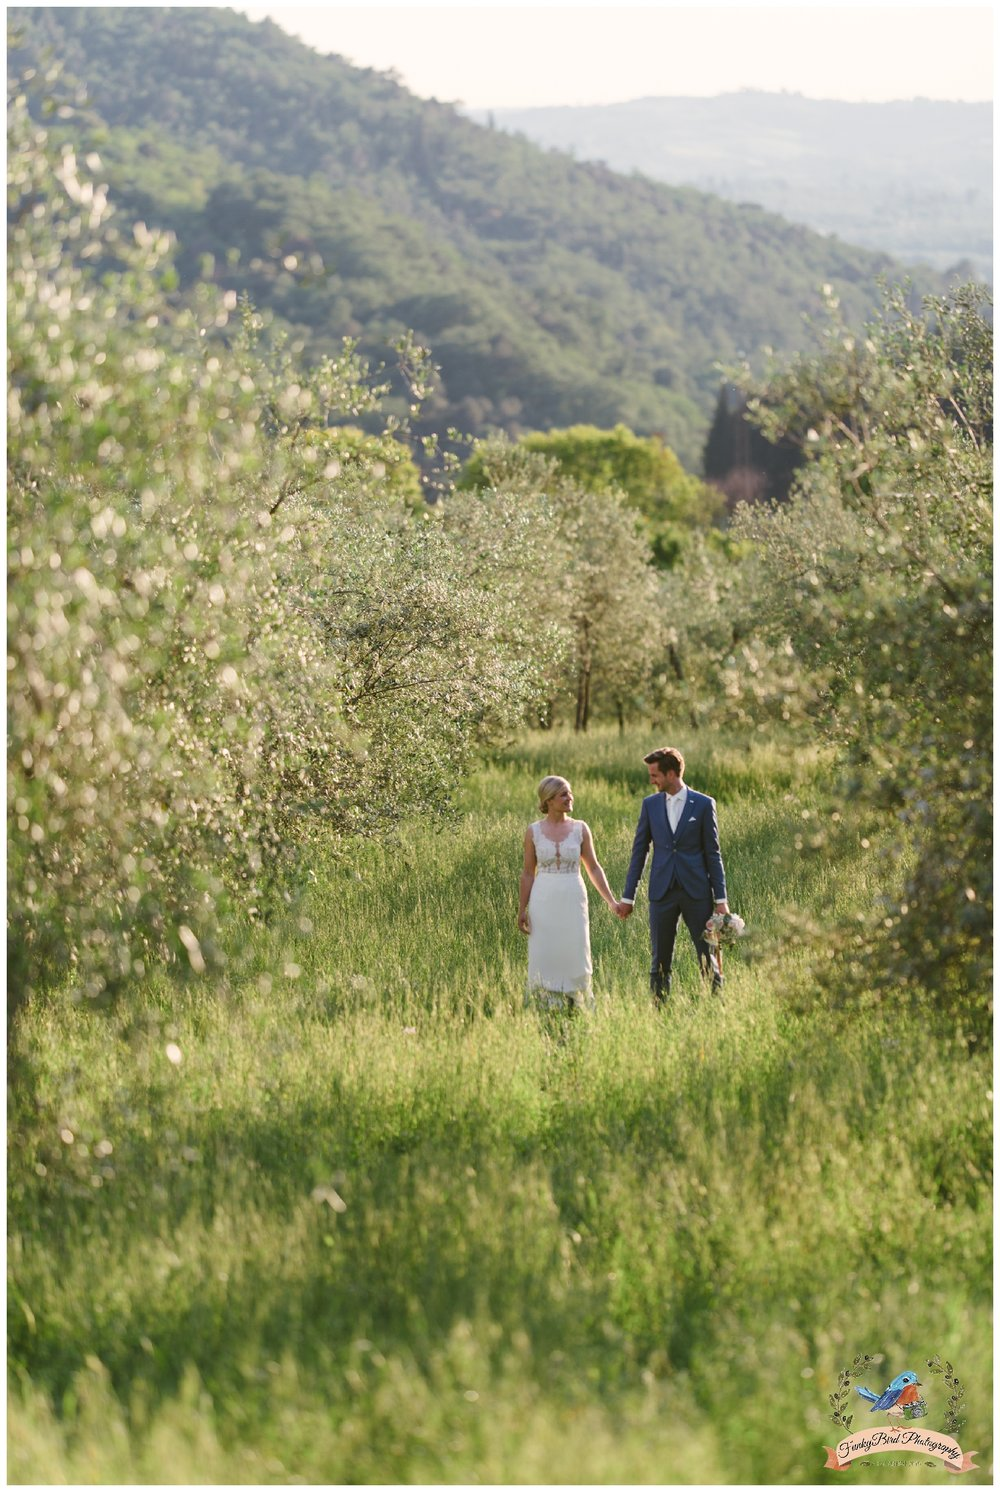 Wedding Photographer Tuscany, Wedding Photographer Florence, Wedding Photographer Siena, Wedding Photographer Italy, Bruids Fotograaf, Trouwen in Toscane, Trouw Fotograaf, Borgo i Vicelli